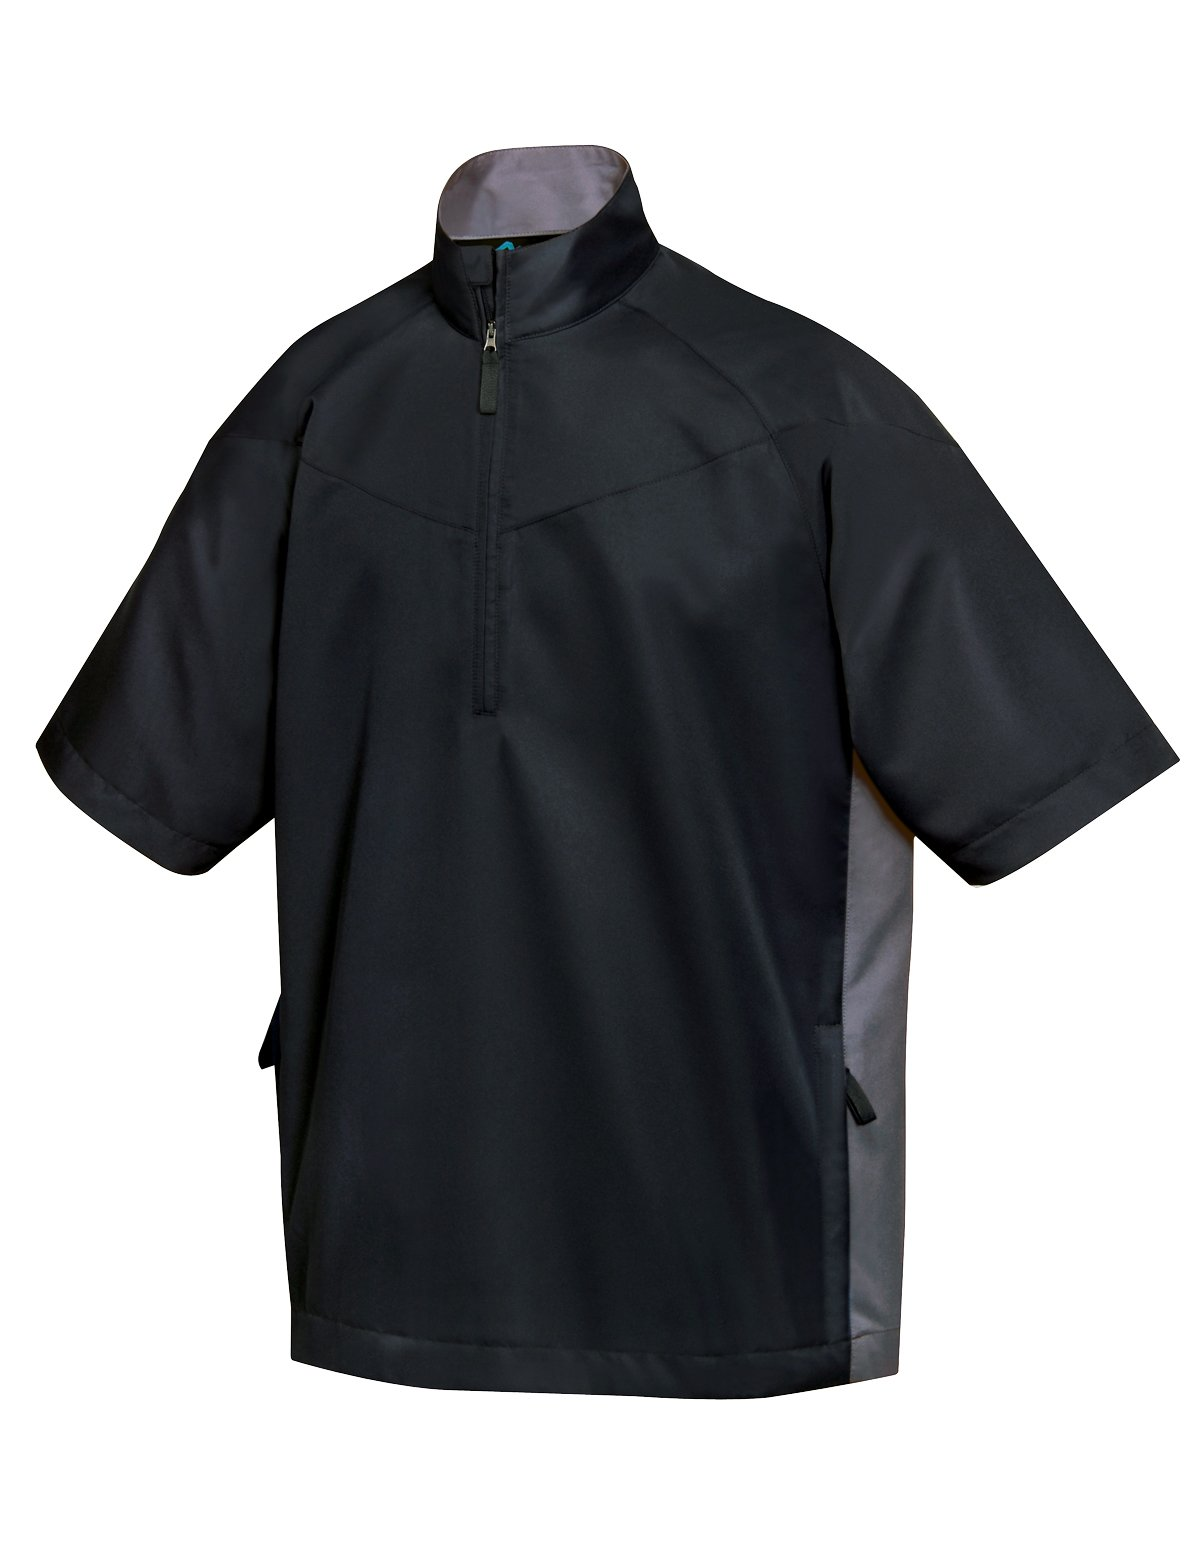 Tri-Mountain Icon Half-Zip Short Sleeve Windshirt, L, Black/charcoal by Tri-Mountain